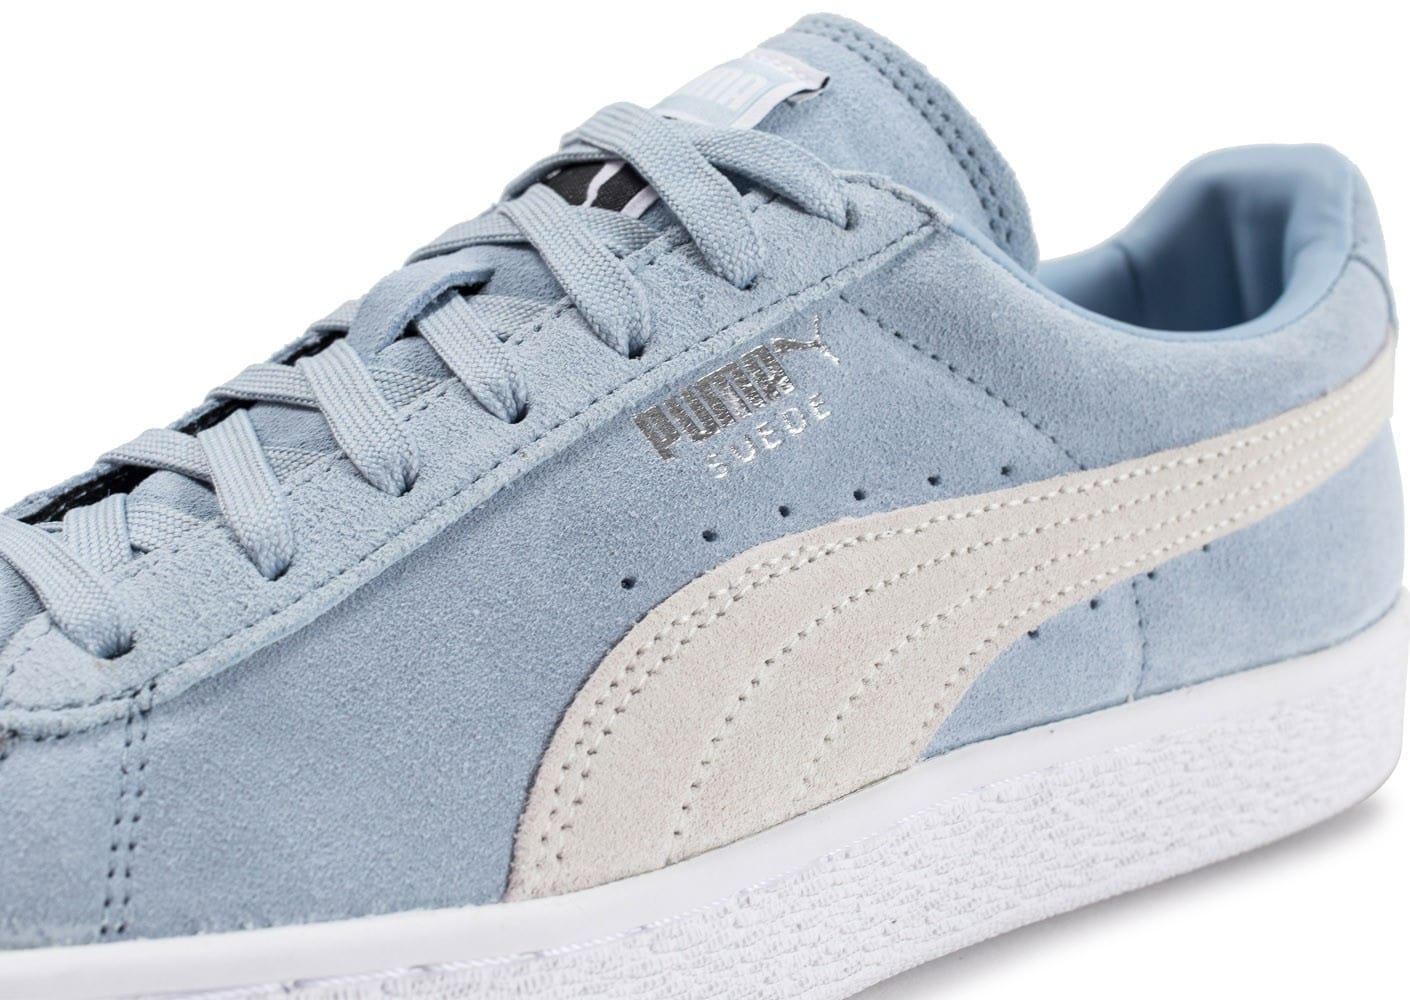 new concept 7528a 115ef Classic Fog Homme Baskets Blue Puma Chausport Suede Chaussures 5pTwxWqUH